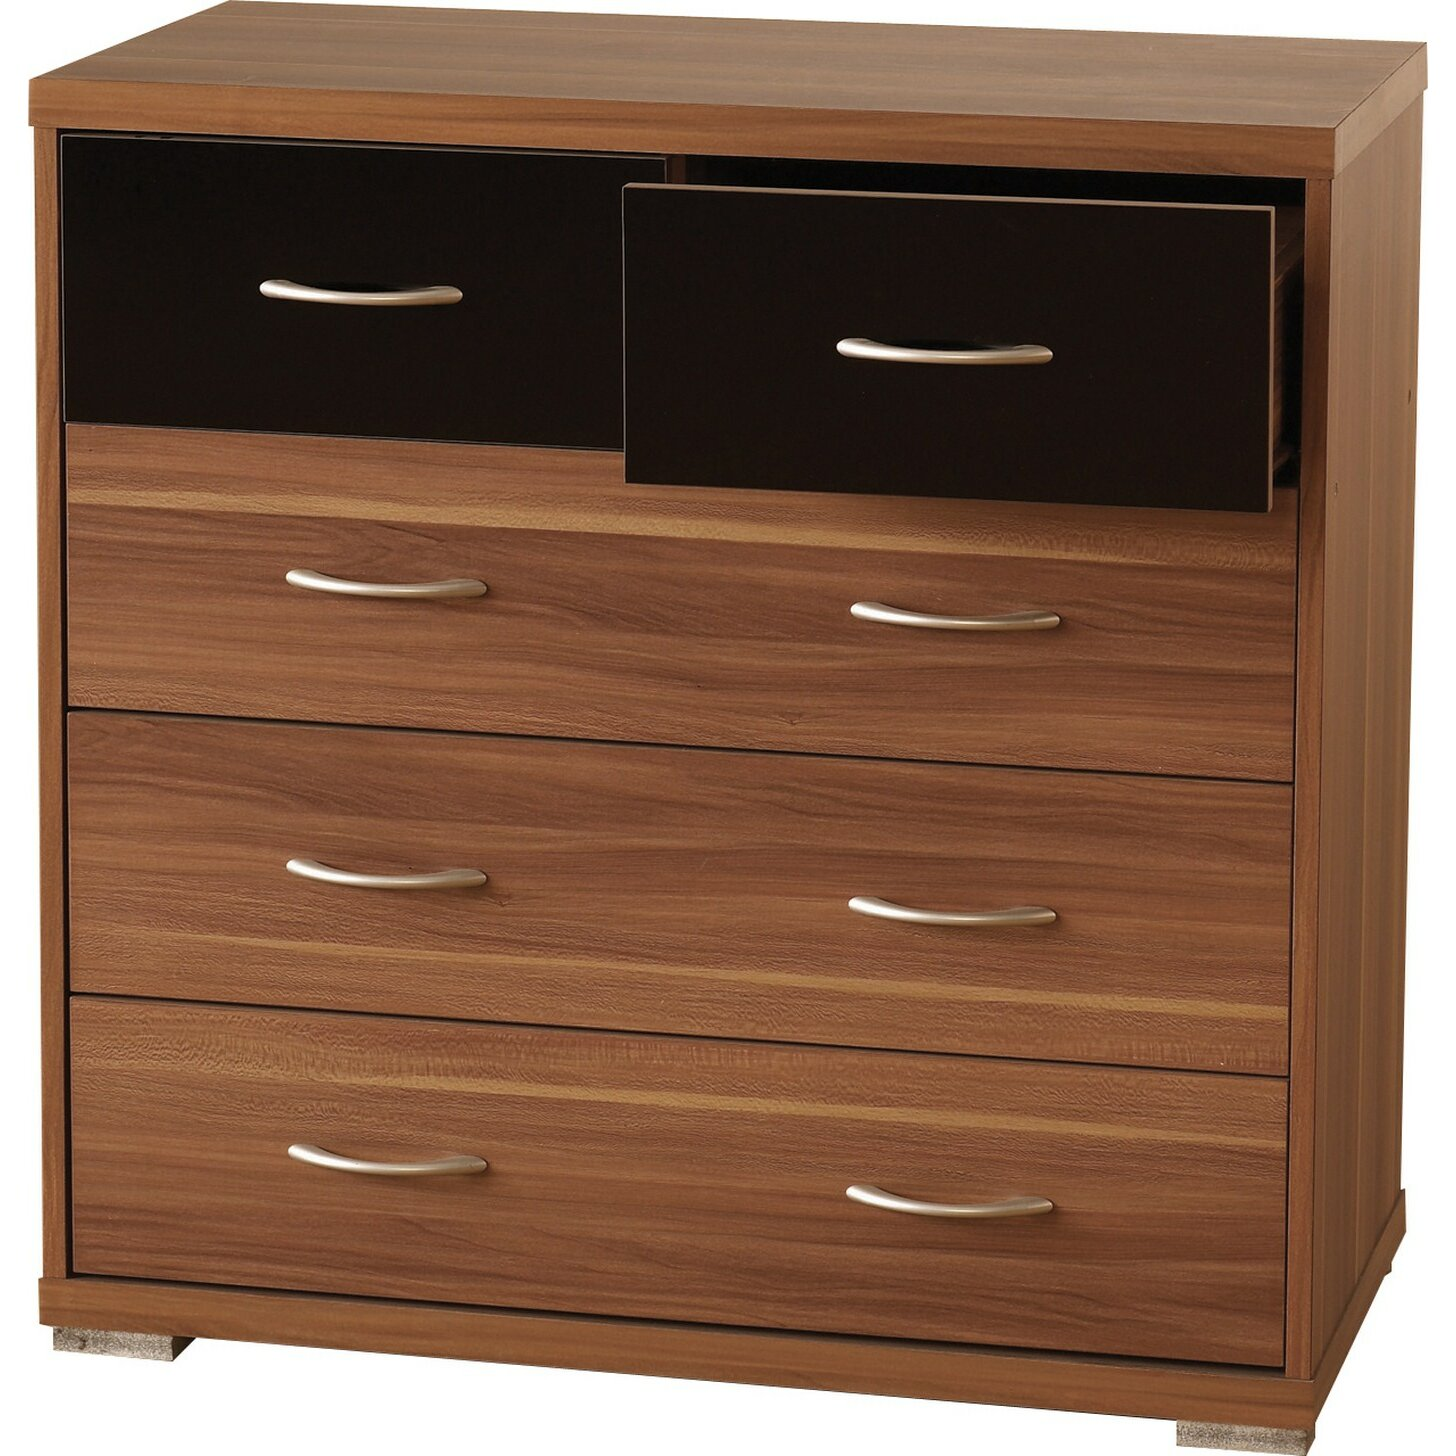 Home haus shearwater drawer chest of drawers reviews